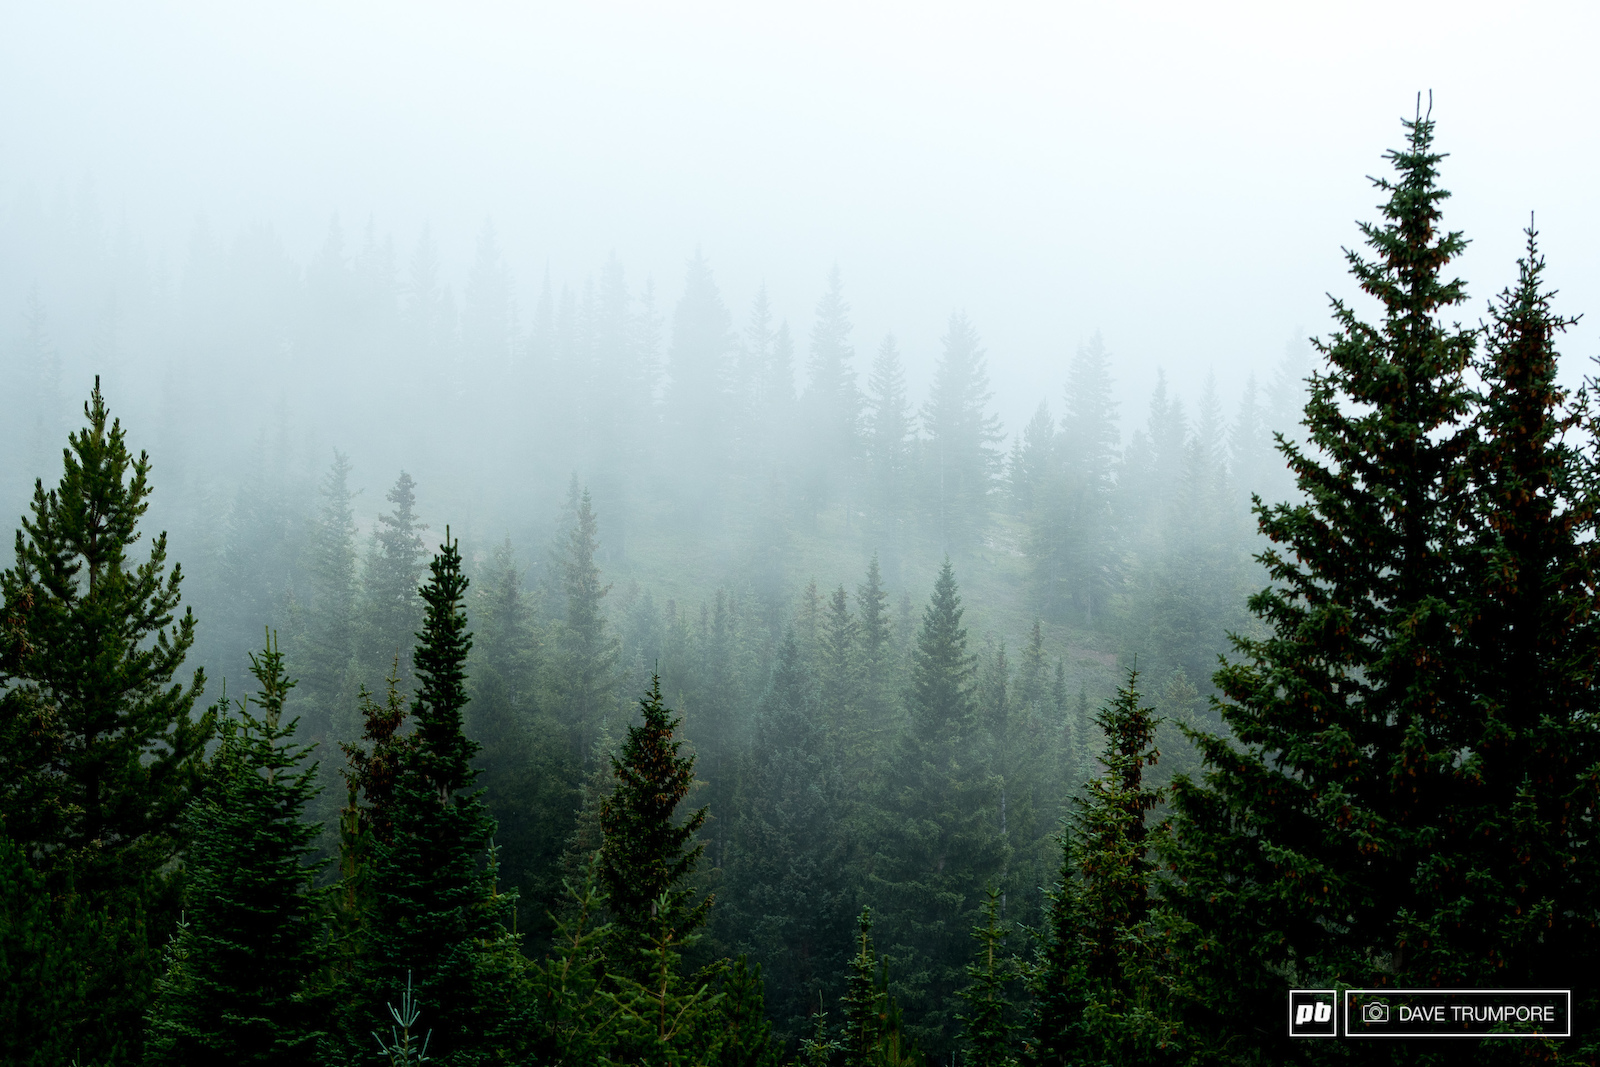 It s usually sunny in Aspen but nothing is ever for certain in the high mountains. Fog and rain can appear in the blink of an eye when above 9k feet.